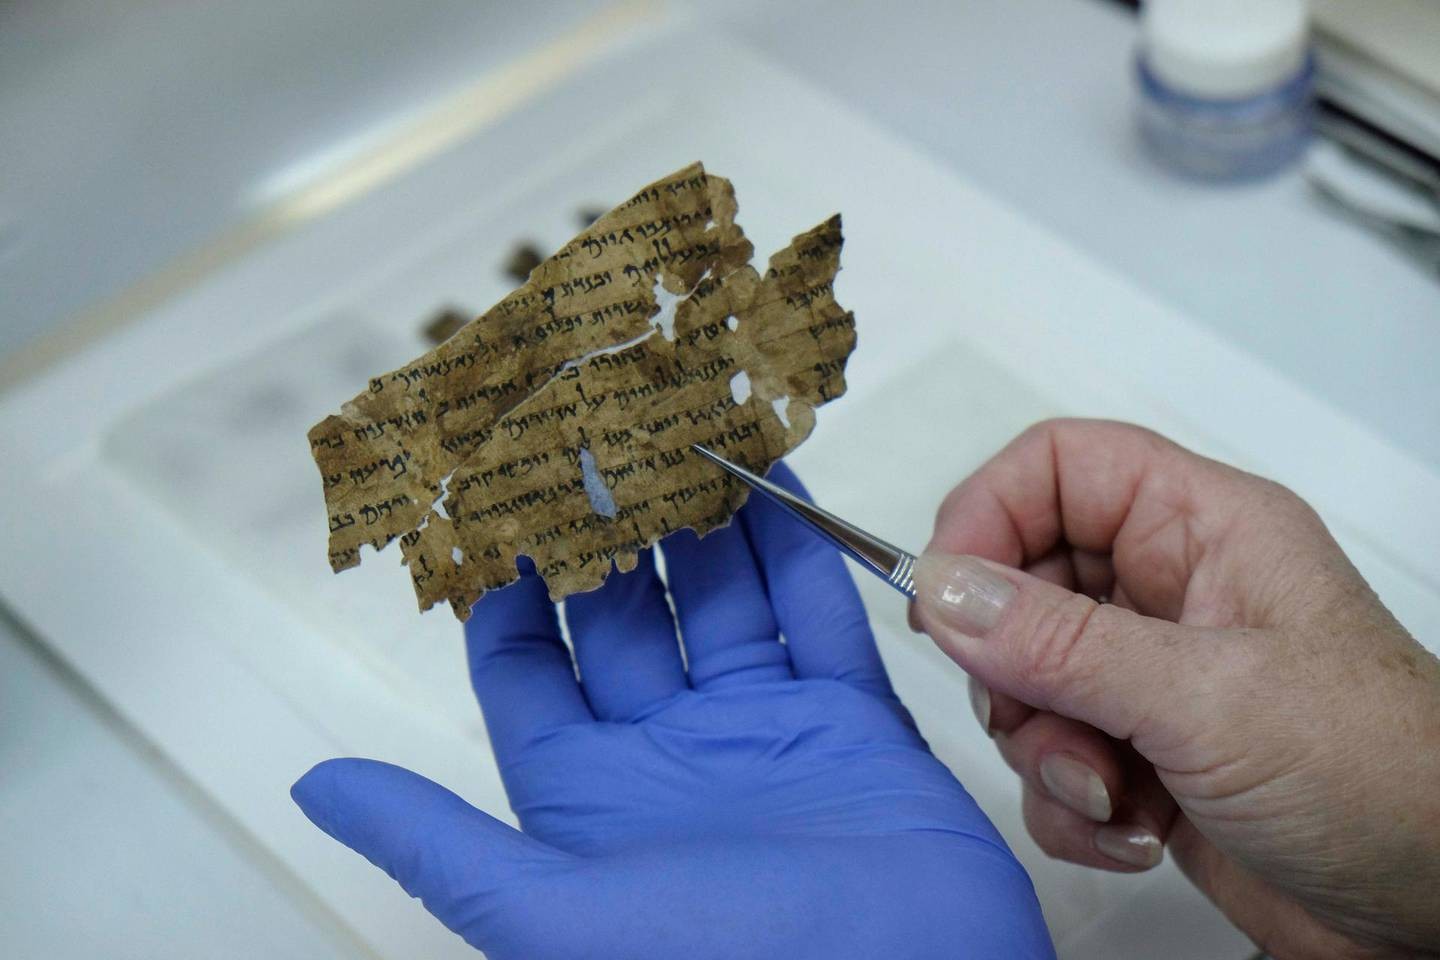 A worker of the Israeli Antiquity Authority sews fragments of the Dead Sea scrolls which includes biblical verses in a preservation laboratory of the Israel Museum in Jerusalem. Getty Images